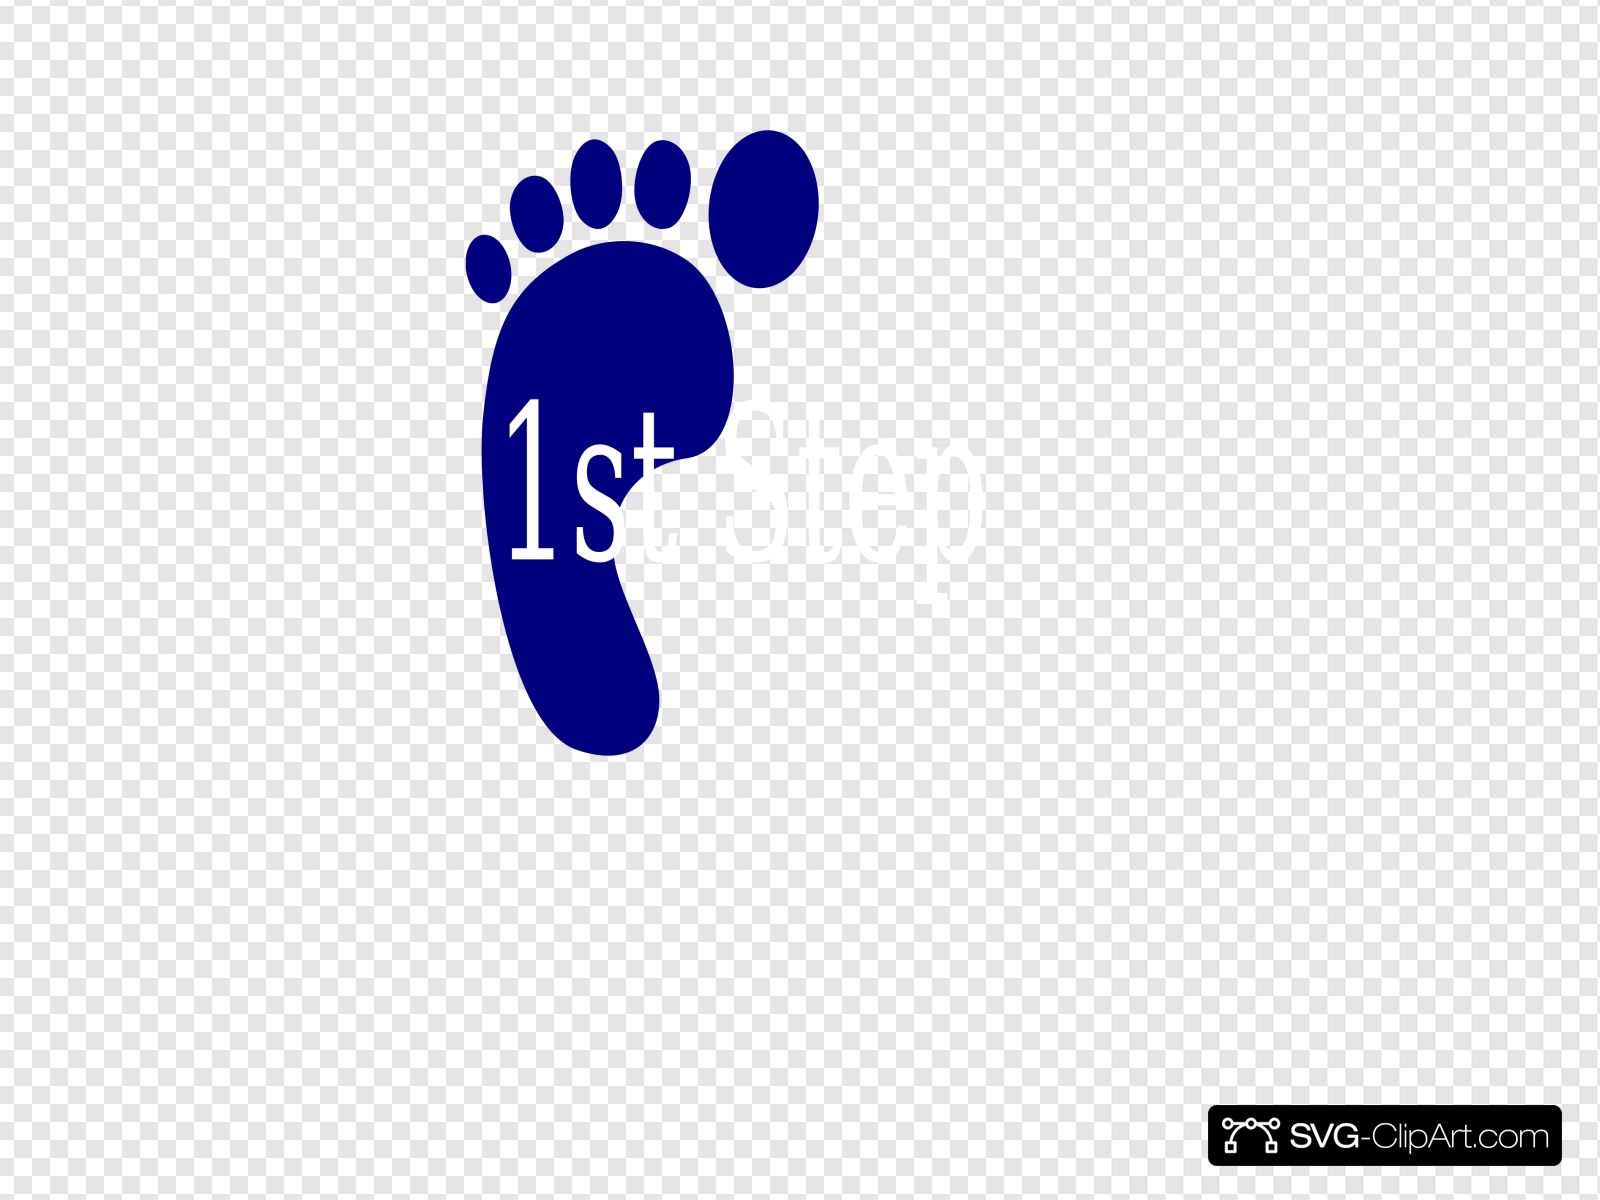 First Step Clip art, Icon and SVG.